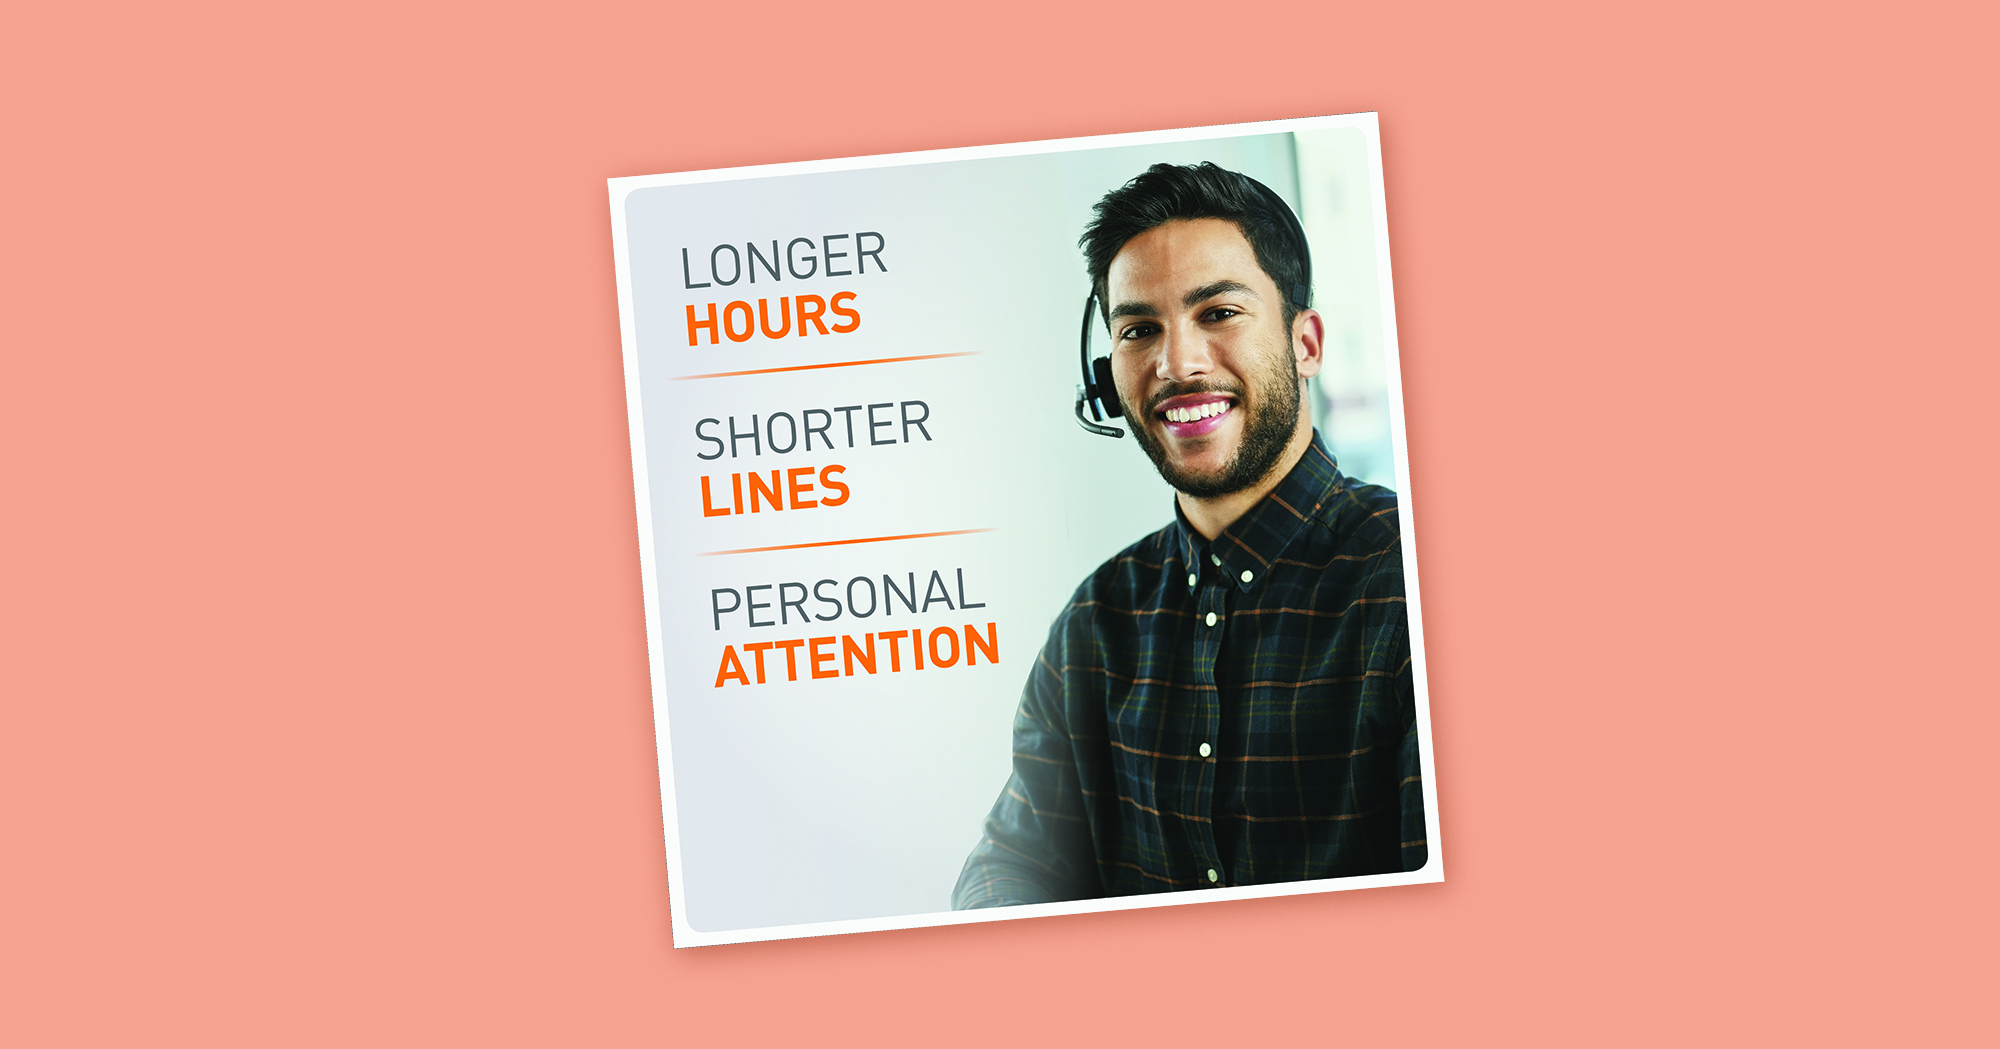 """A mockup of a square sign over a salmon-colored background. The sign features a light gray gradient background, with a headline reading """"Longer hours, shorter lines, personal attention"""" next to an image of a happy banker speaking through a headset."""